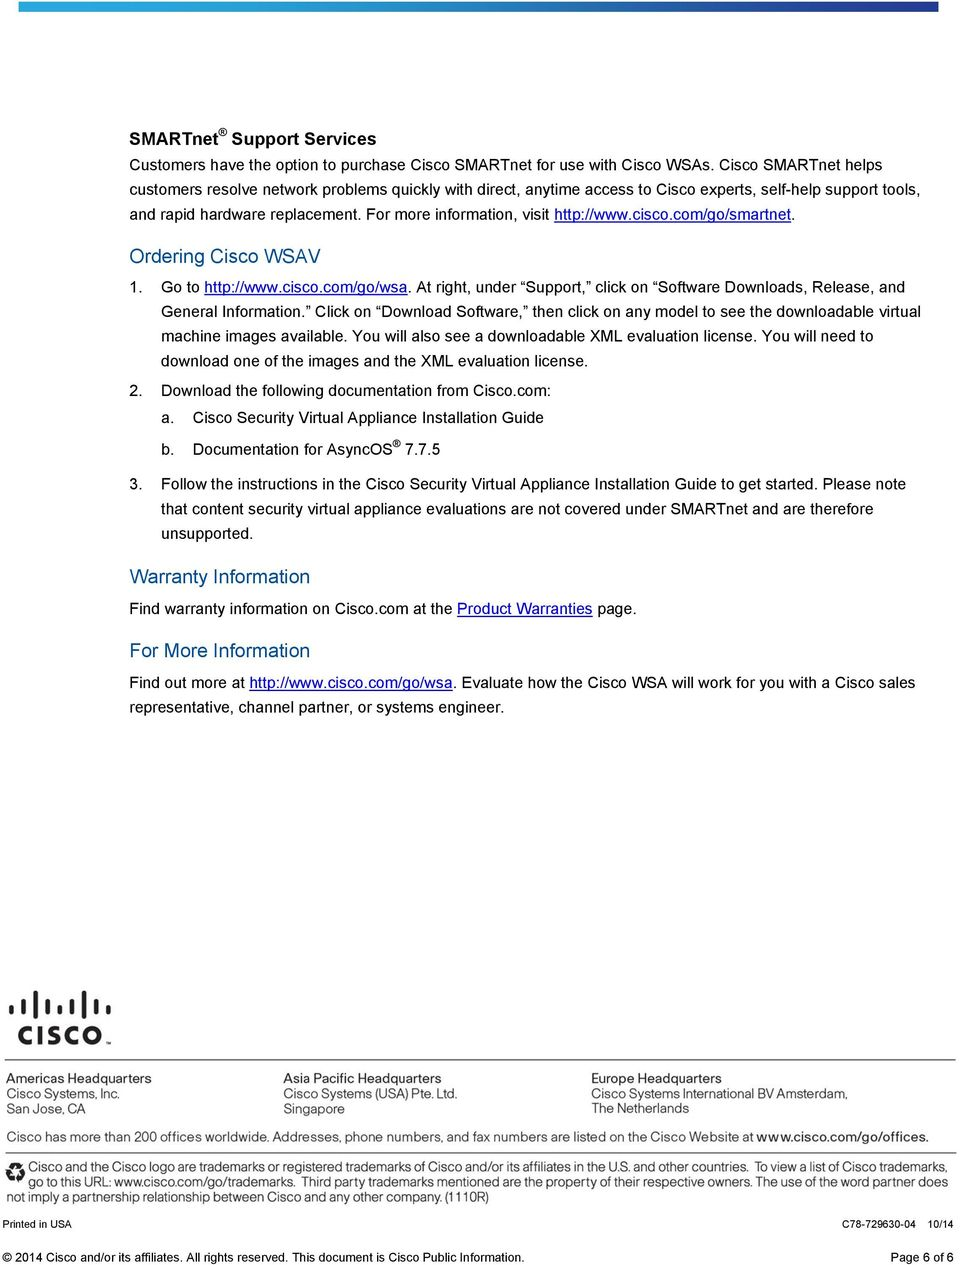 For more information, visit http://www.cisco.com/go/smartnet. Ordering Cisco WSAV 1. Go to http://www.cisco.com/go/wsa.